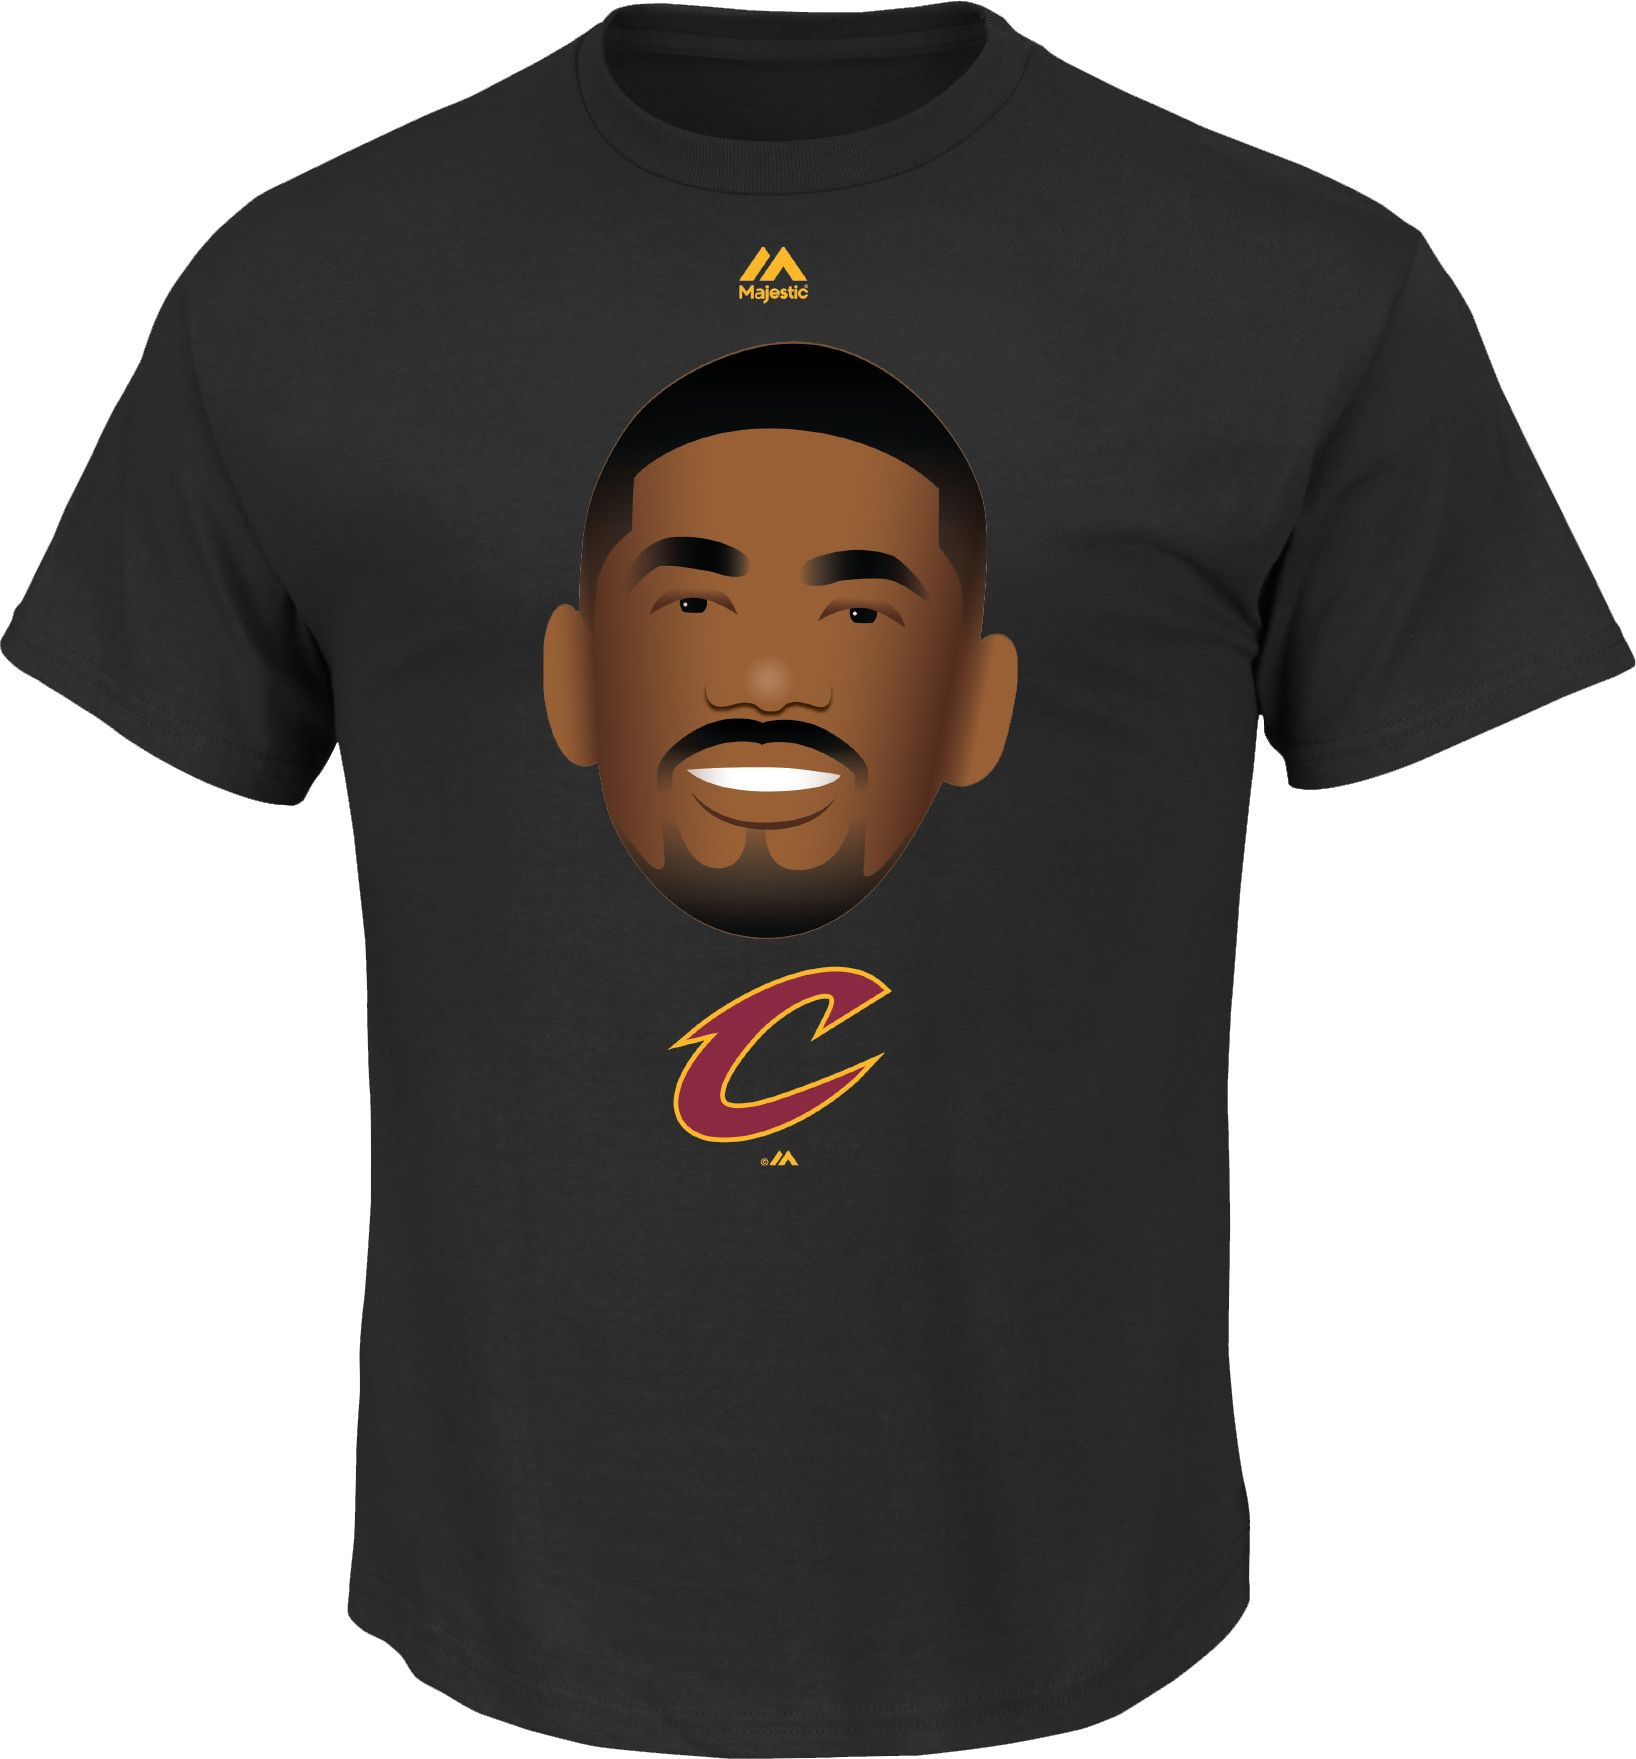 Cavs black t shirt jersey - Majestic Men S Cleveland Cavaliers Kyrie Irving Emoji Black T Shirt